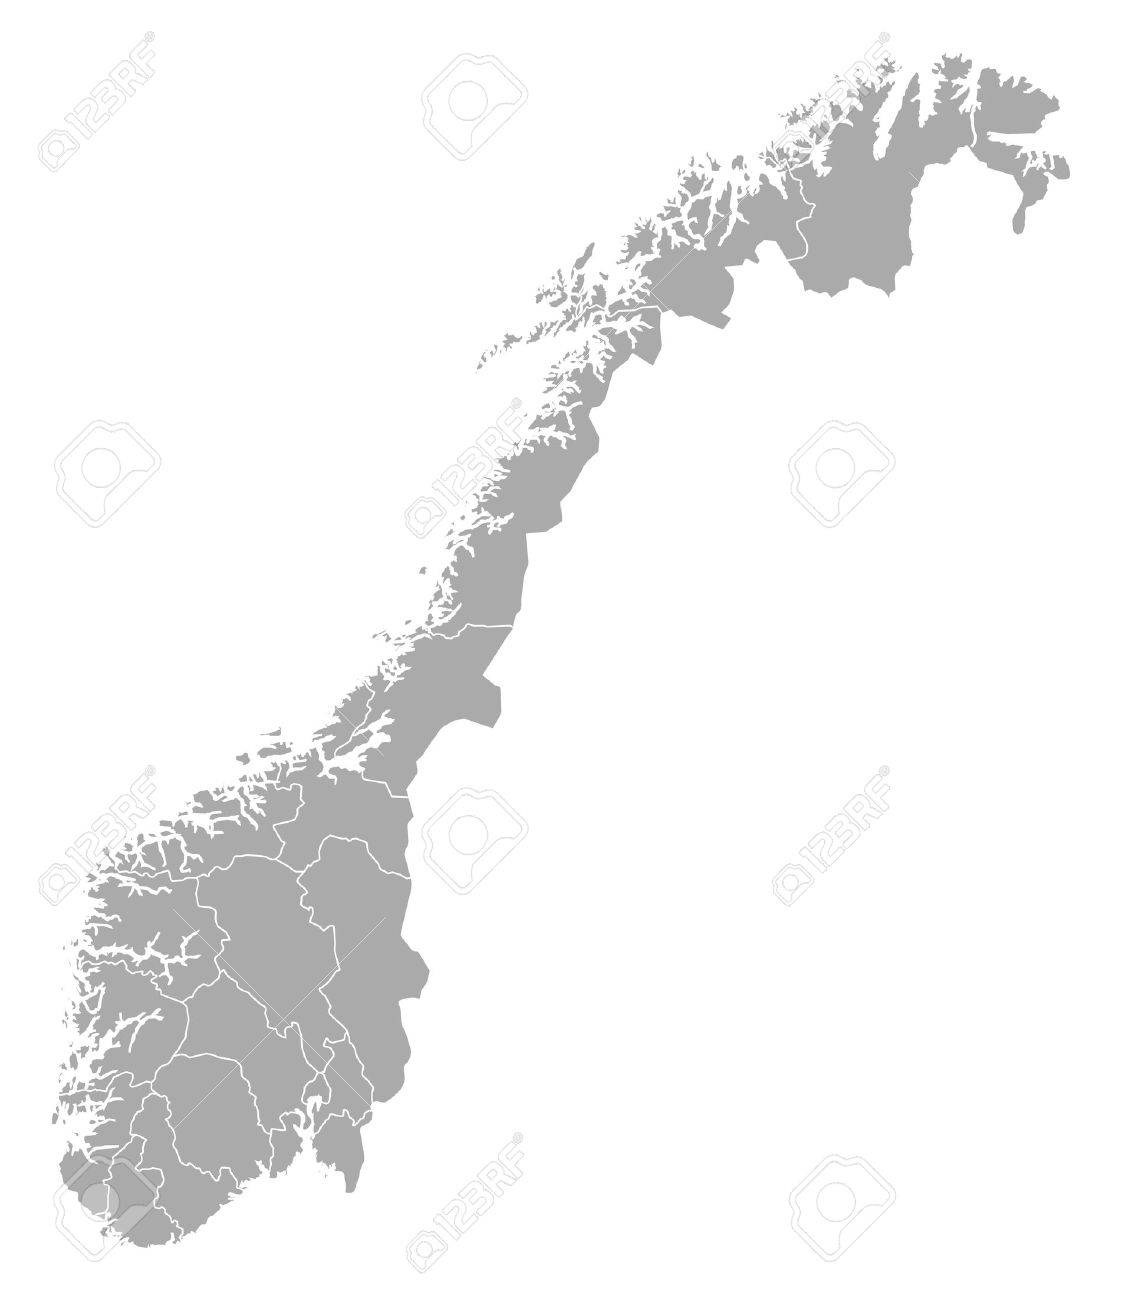 Political Map Of Norway With The Several Counties Royalty Free - Norway map counties